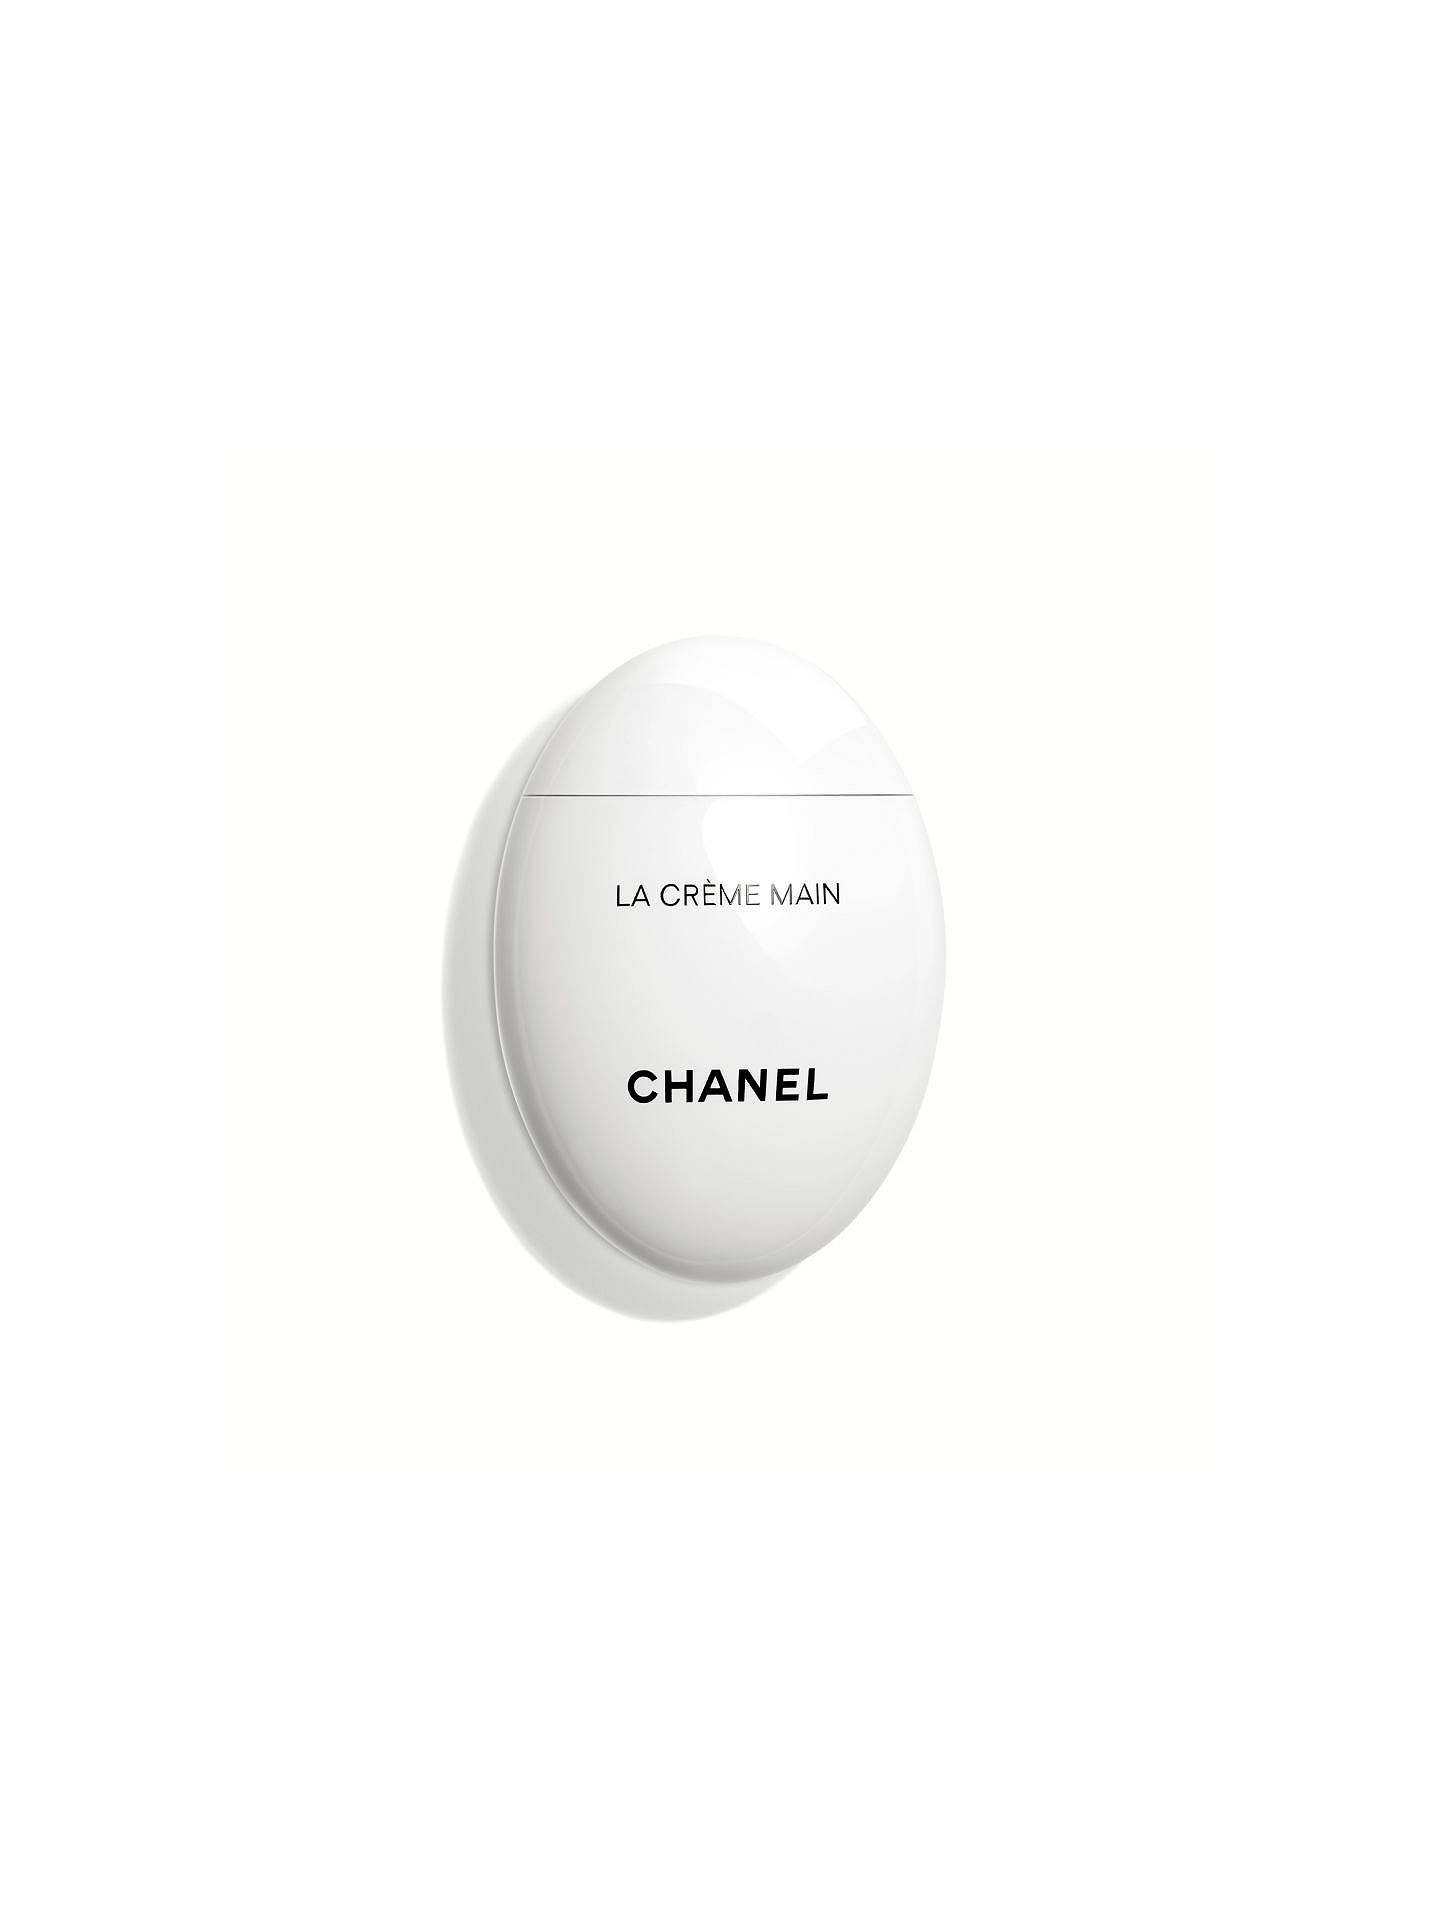 Chanel La Creme Main Smooth Soften Brighten Bottle